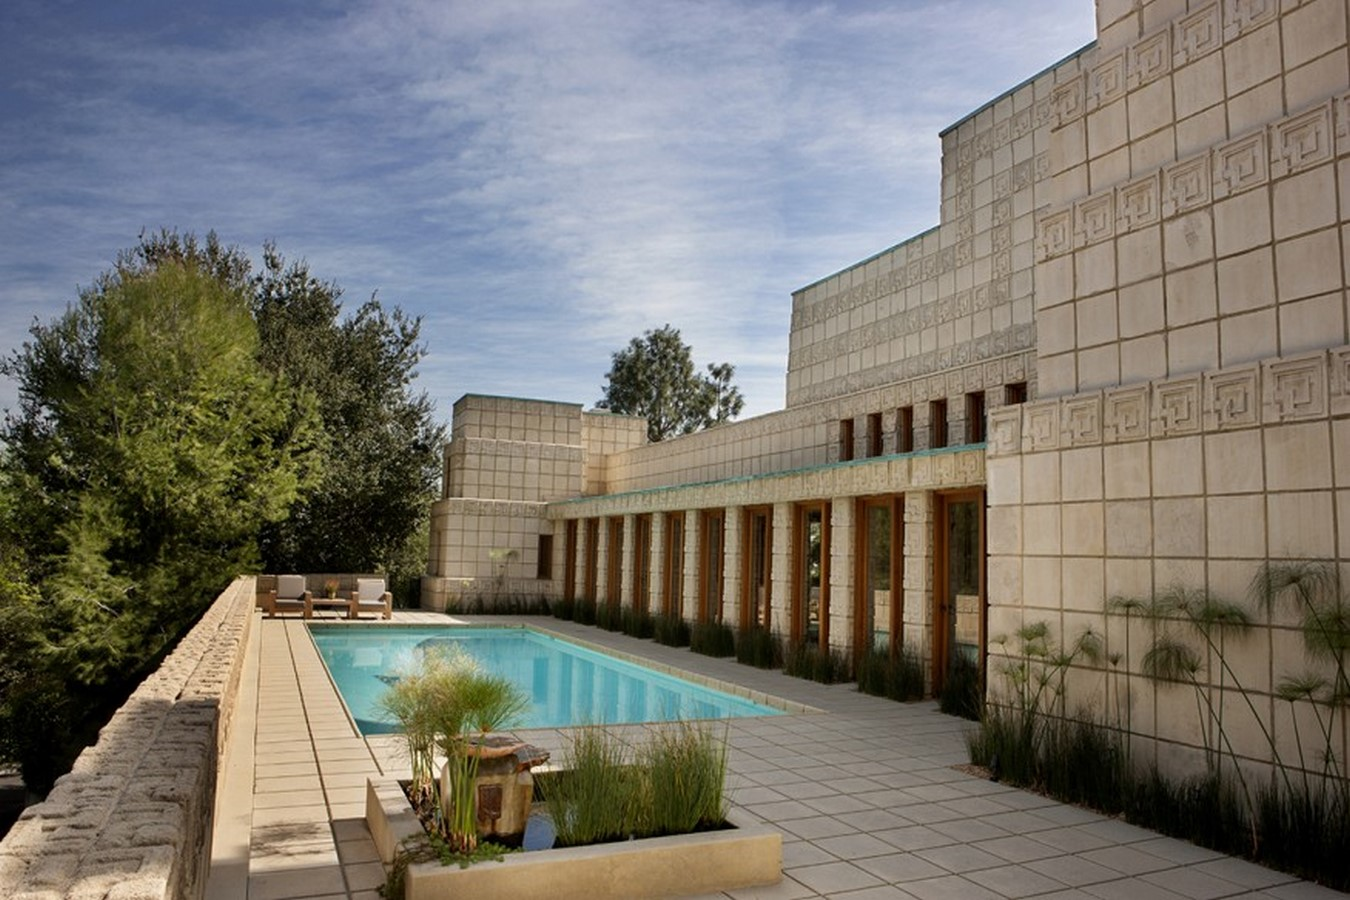 Ennis House by Frank Lloyd Wright A series of concrete block - Sheet3